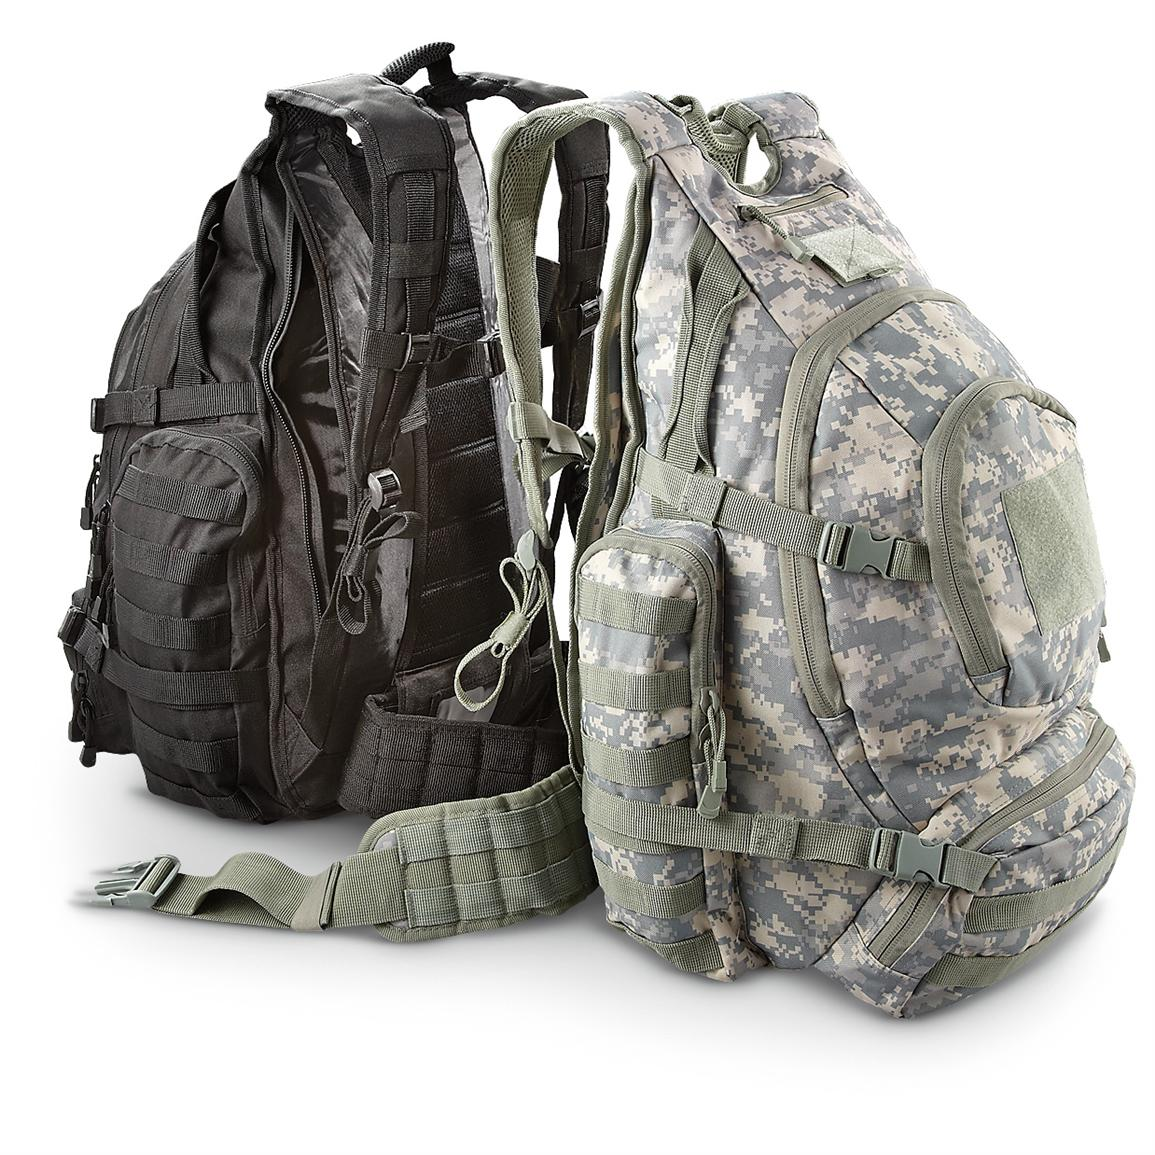 Military-inspired Multi-use Tactical Backpack